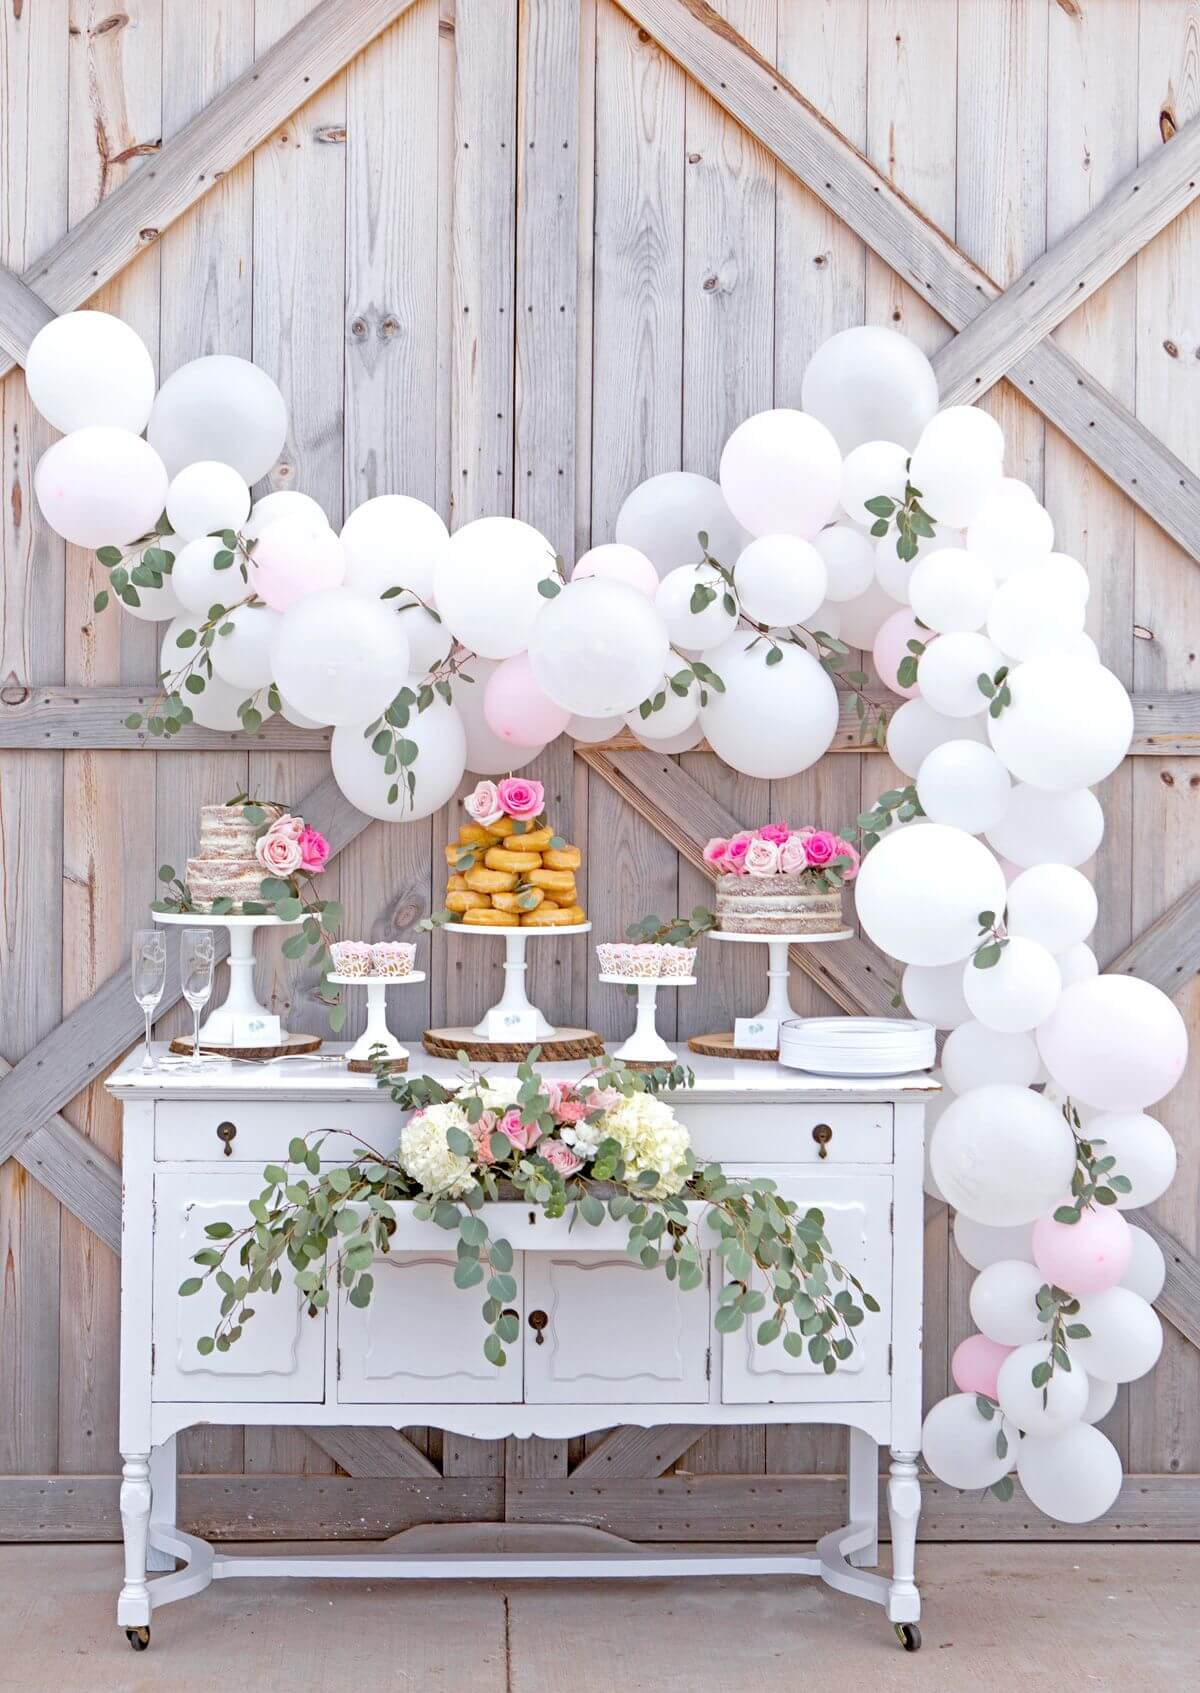 Wedding decorations ideas for home